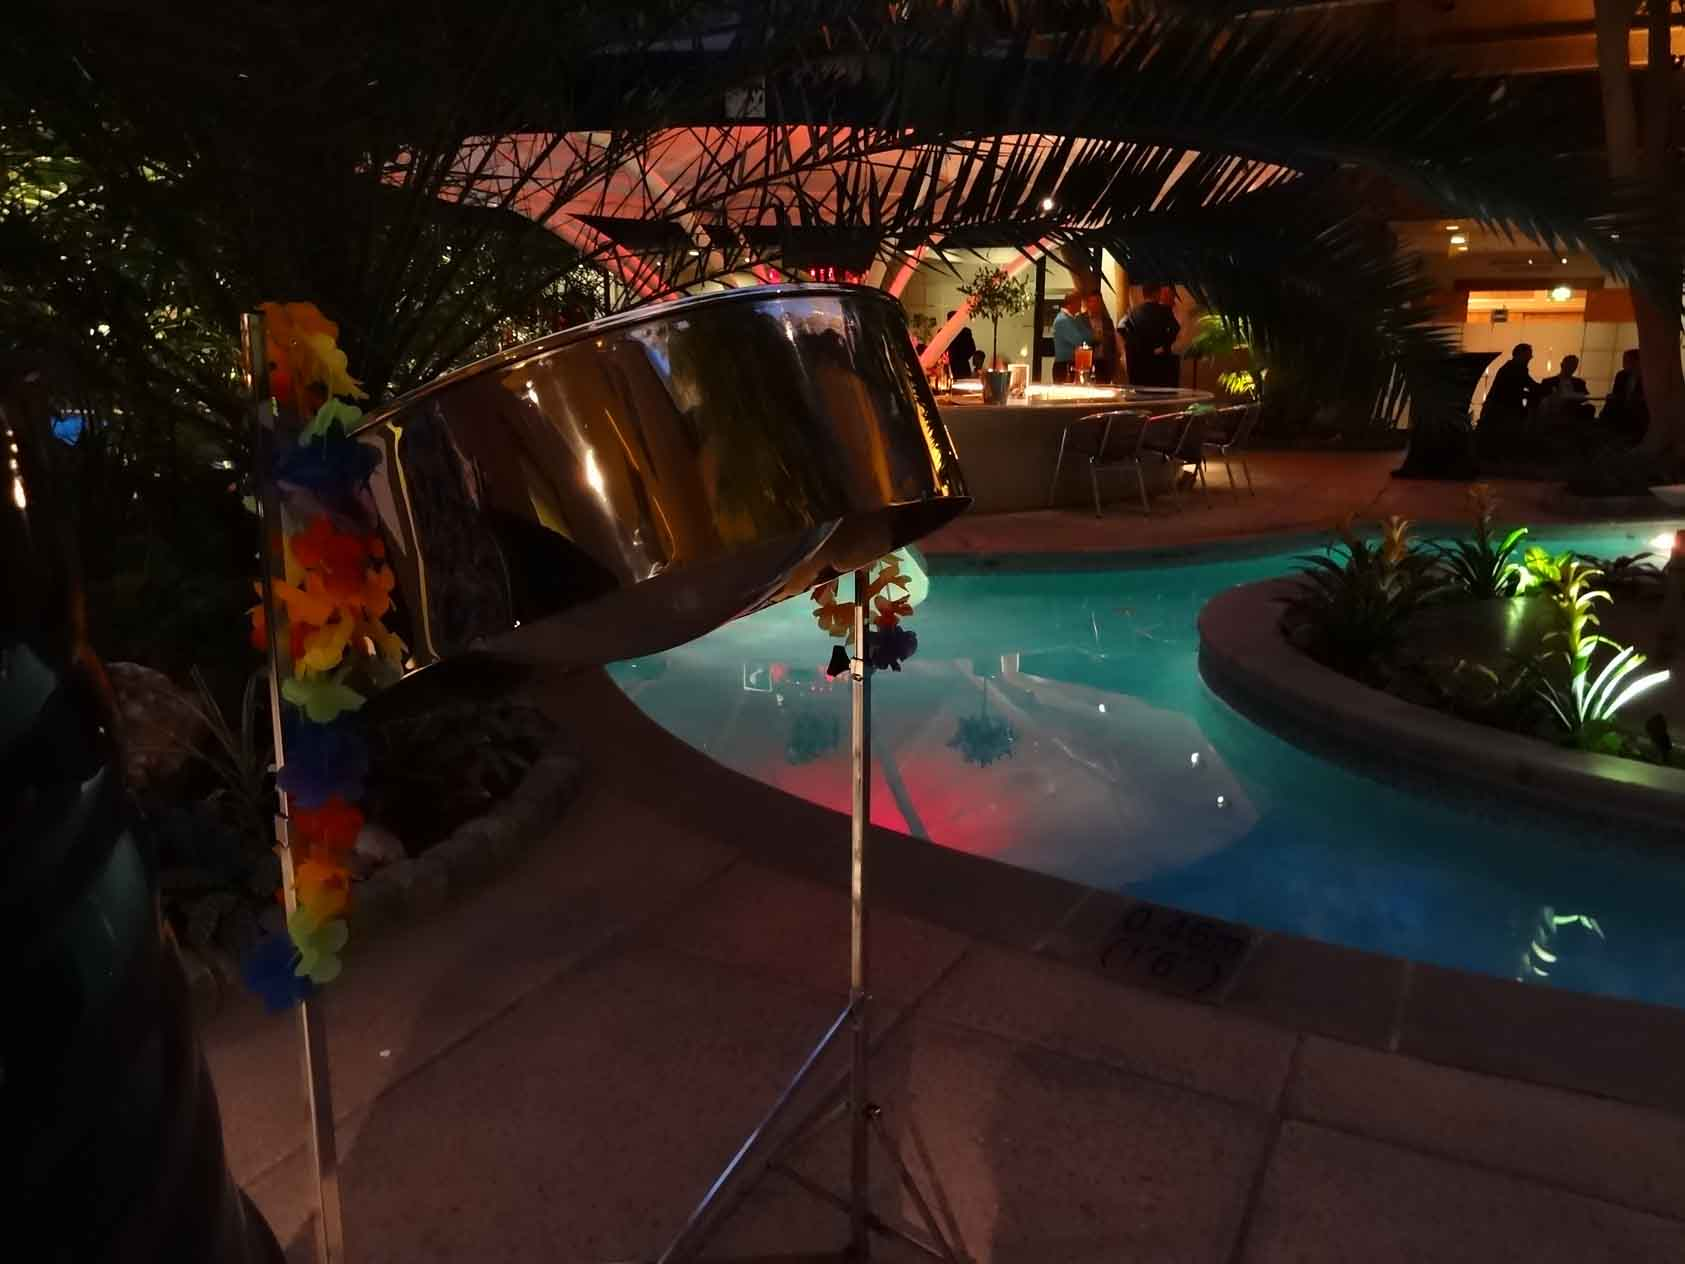 Music for Christmas party, band for Christmas party London, Christmas party ideas, band for Caribbean/Hawaiian party,